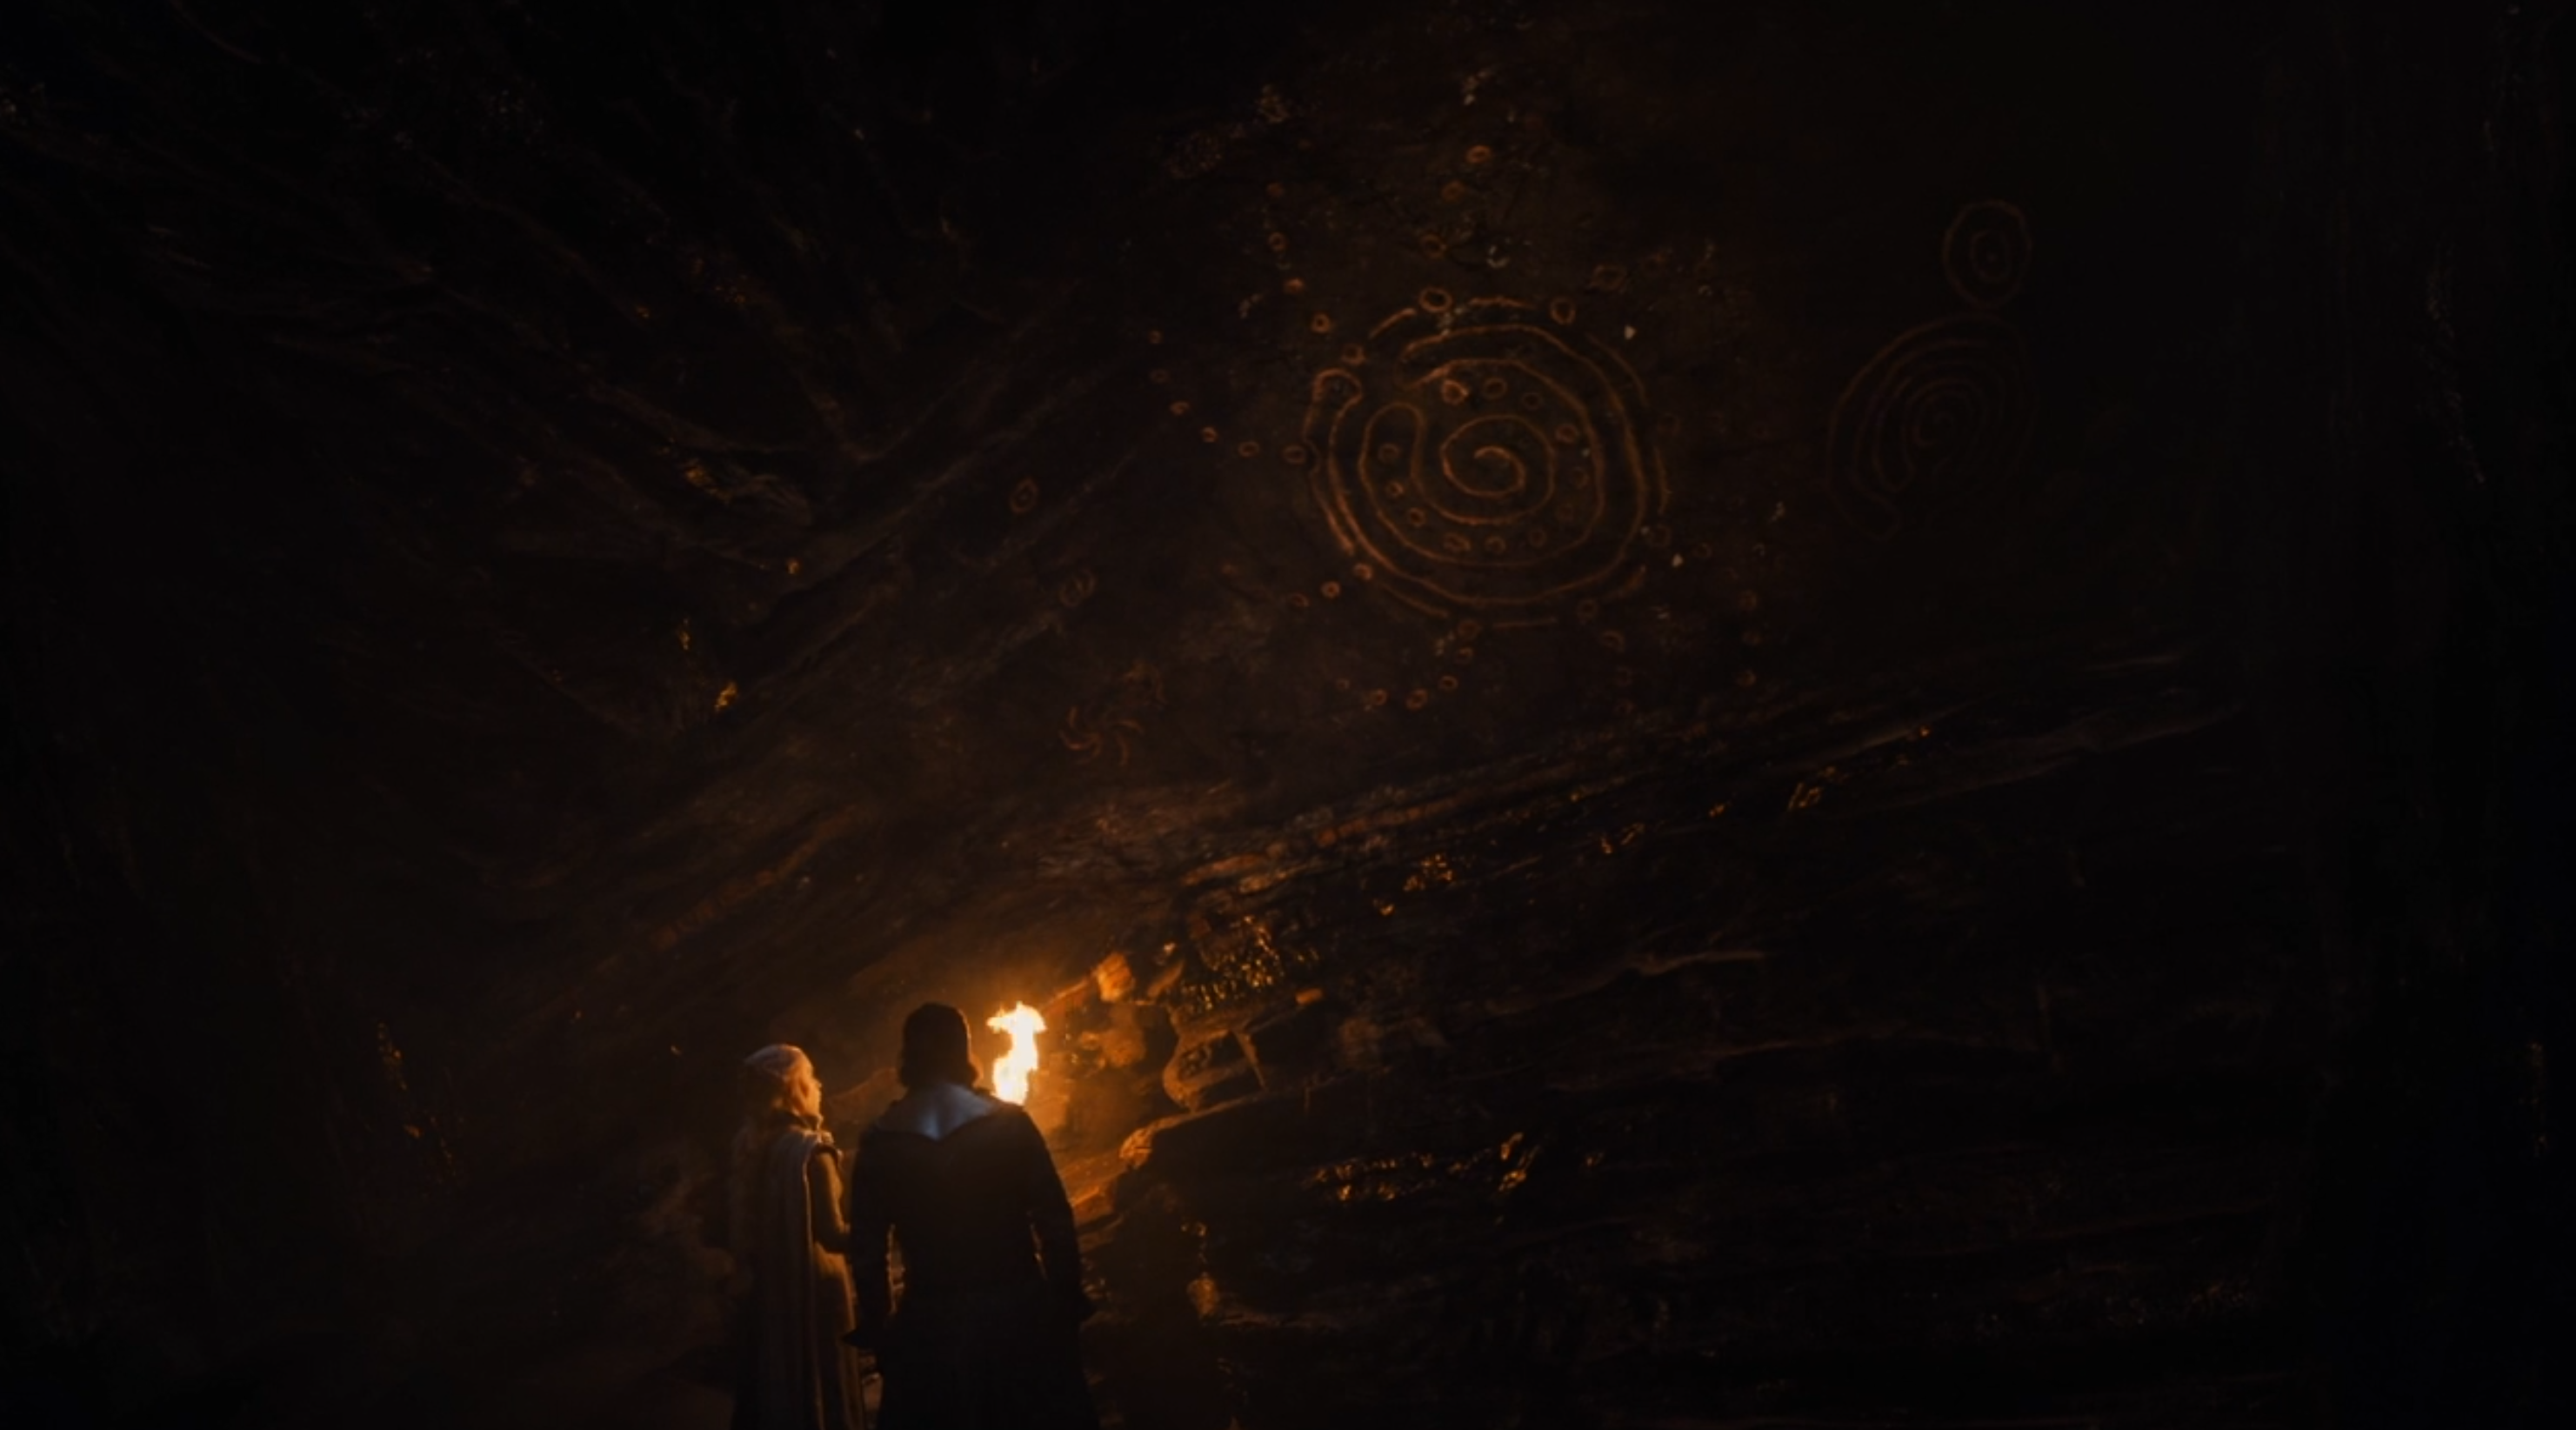 There's a Secret Meaning Behind Those Cave Drawings on 'Game of Thrones'